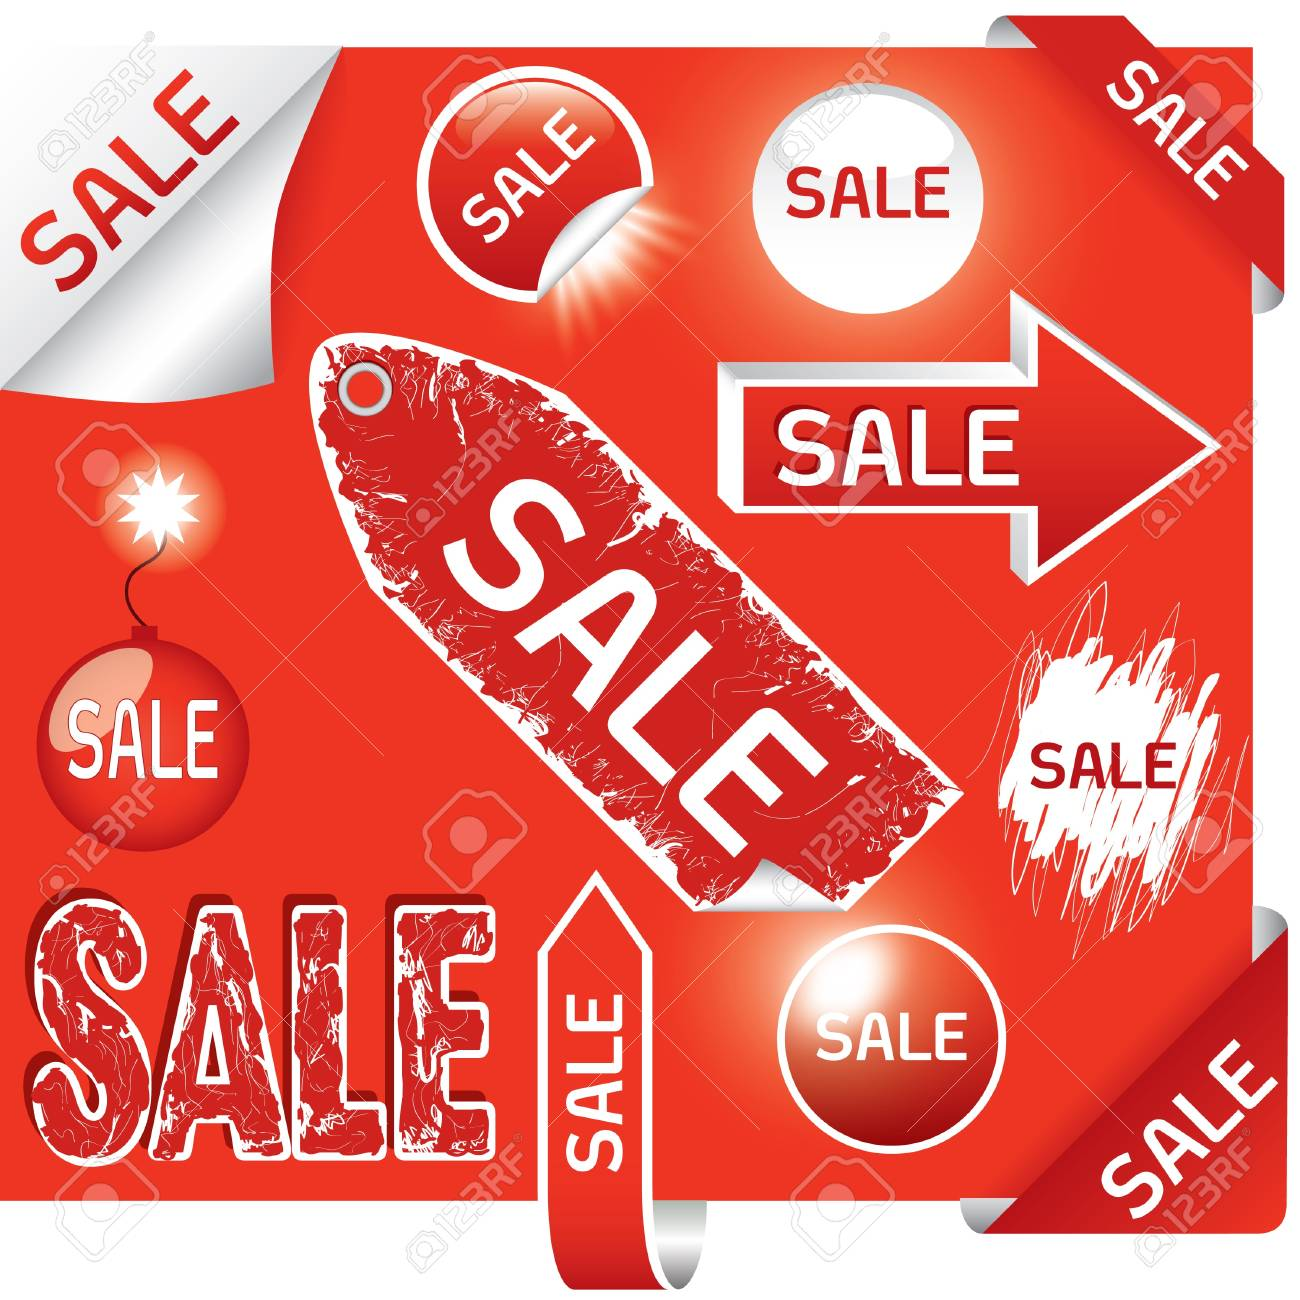 set of sale labels - red and white colors, EPS10 Stock Vector - 9717189